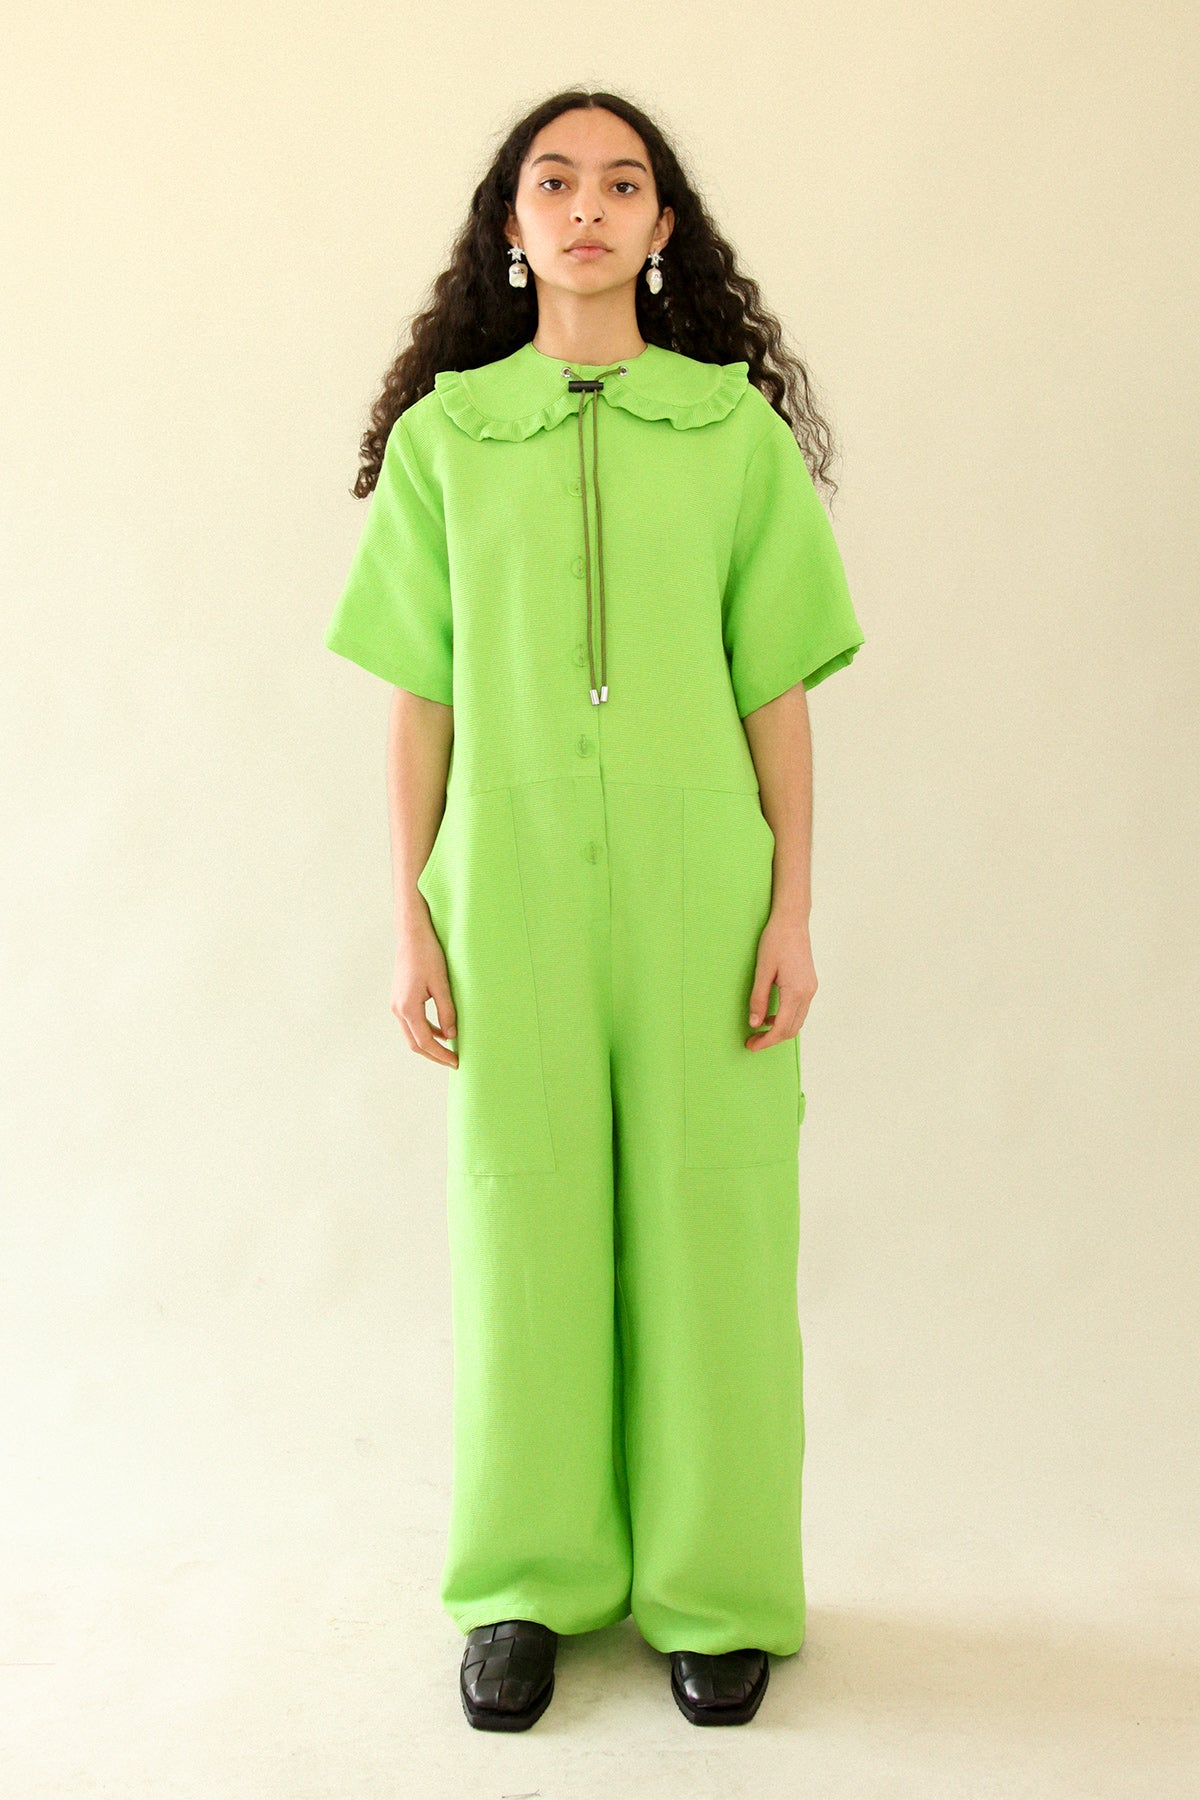 Utility Jumpsuit in Key Lime